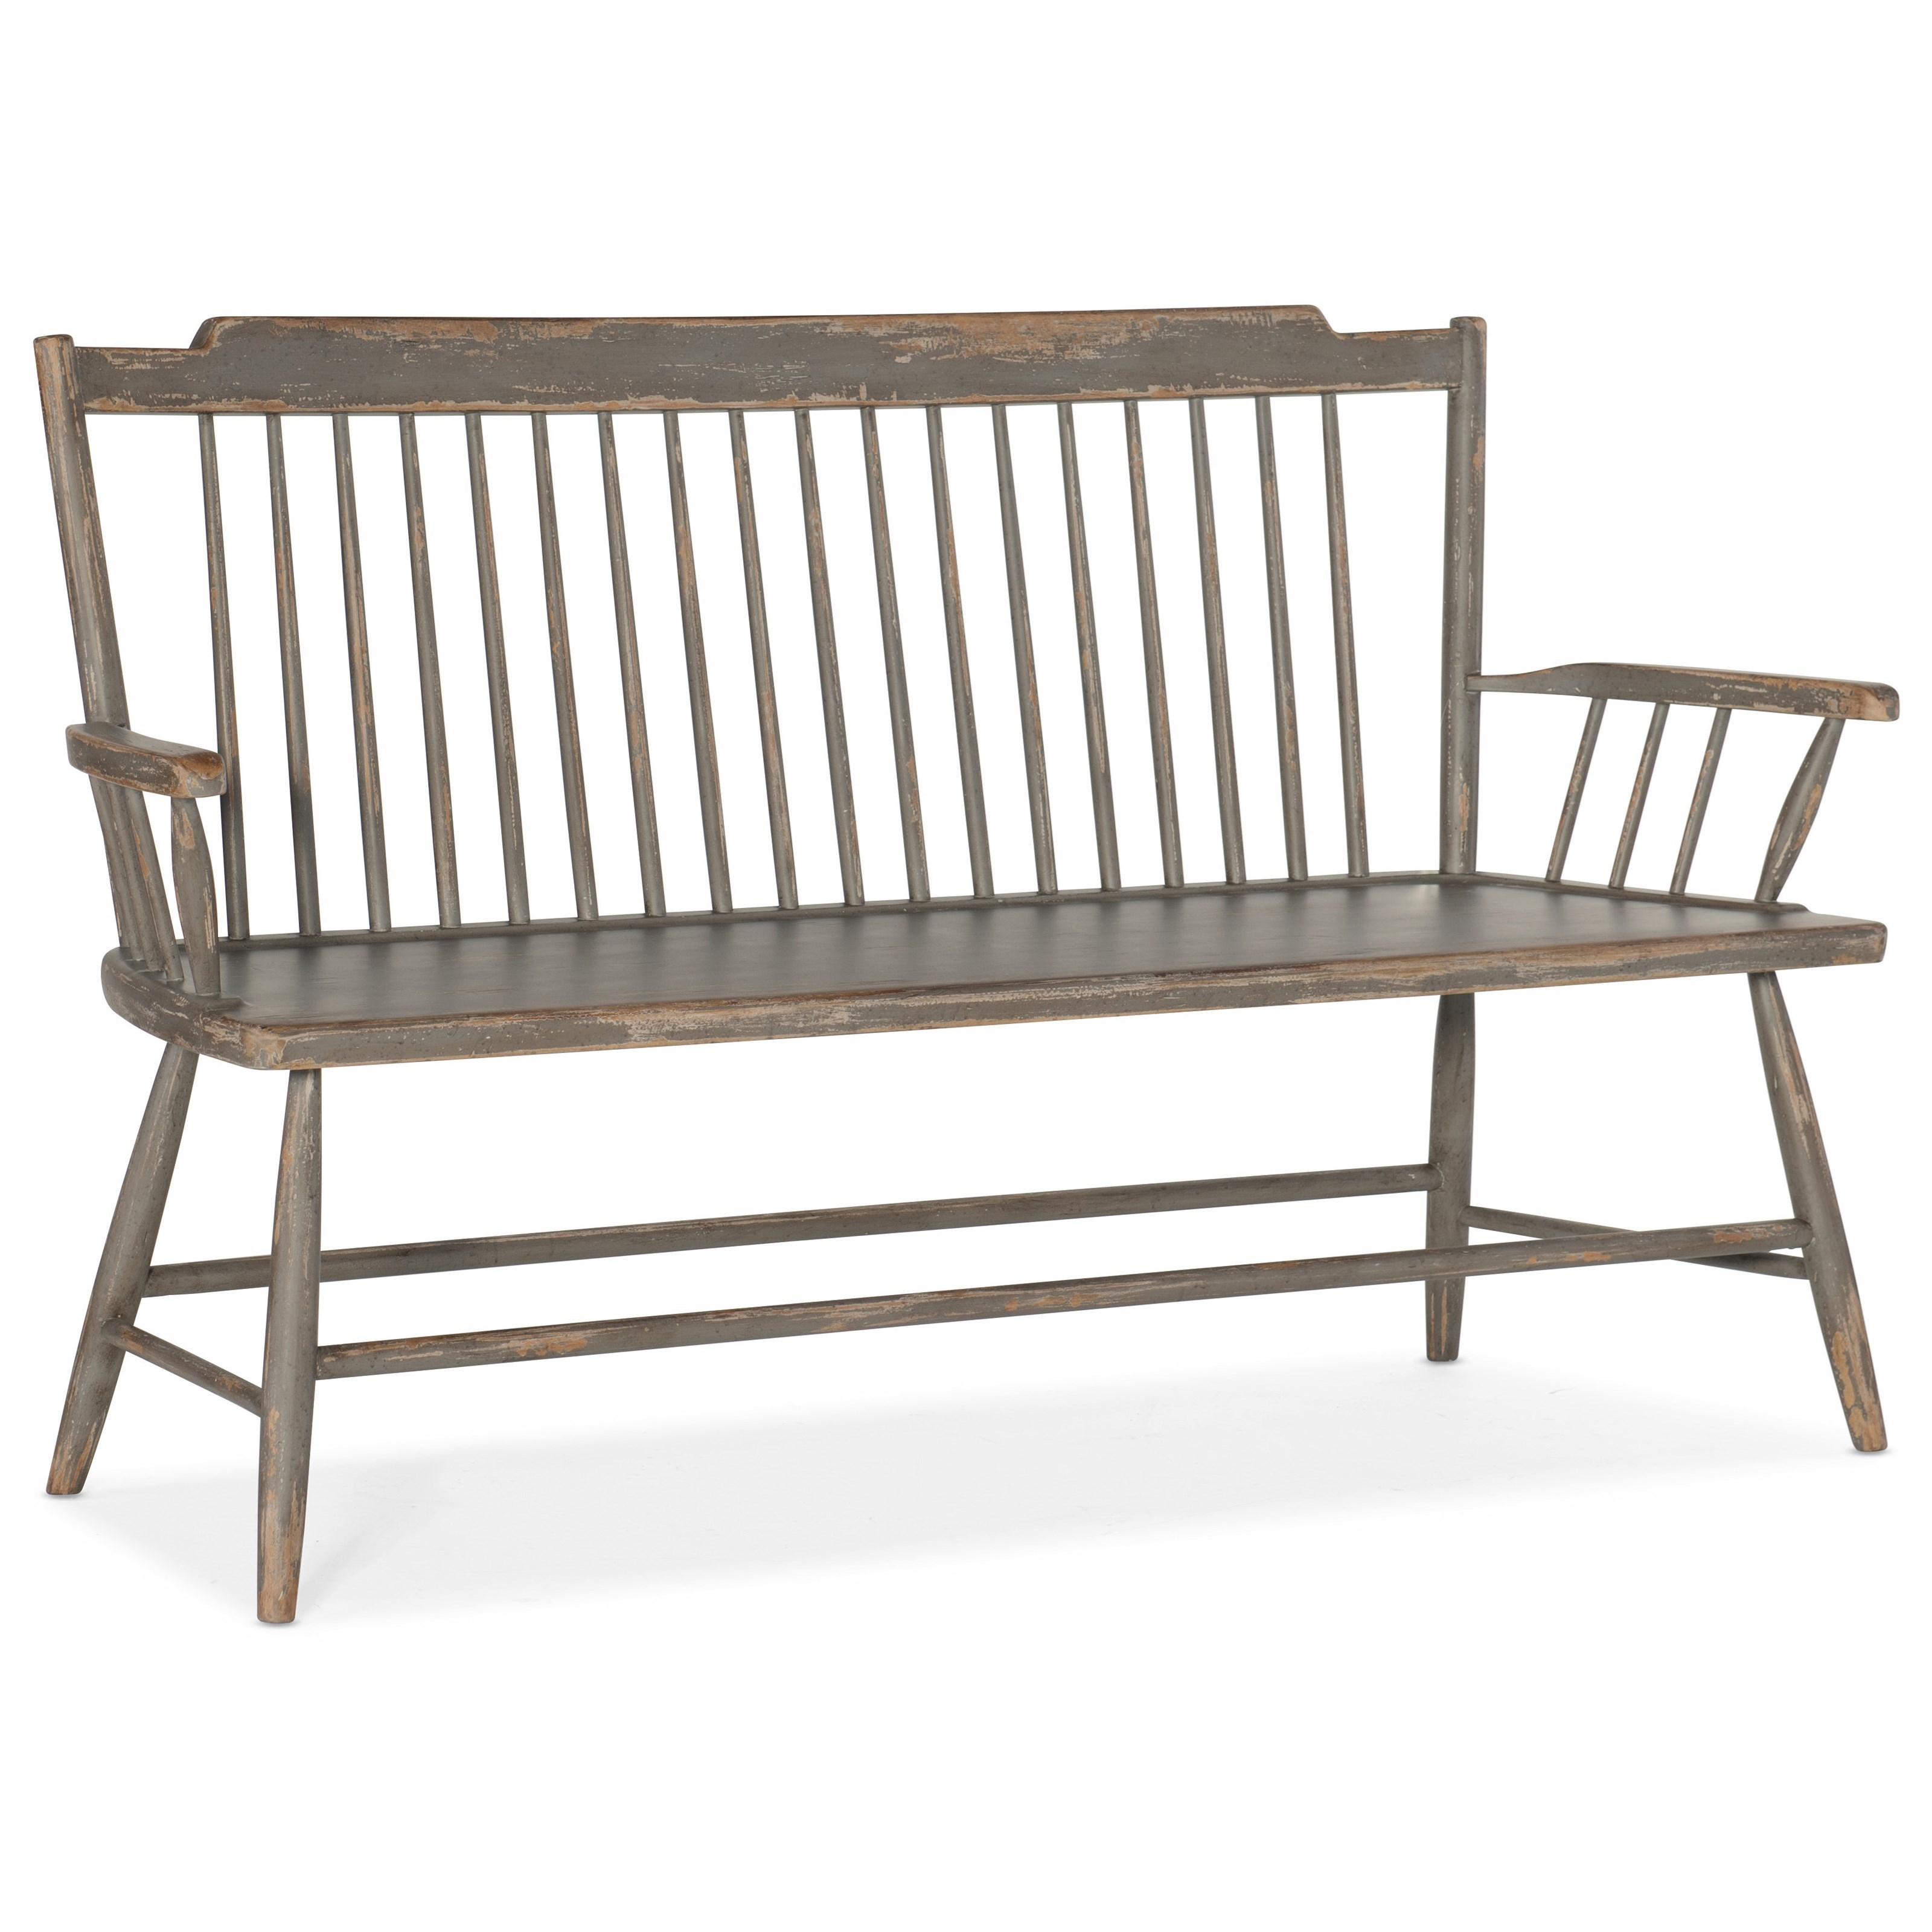 Alfresco Marzano Dining Bench by Hamilton Home at Sprintz Furniture